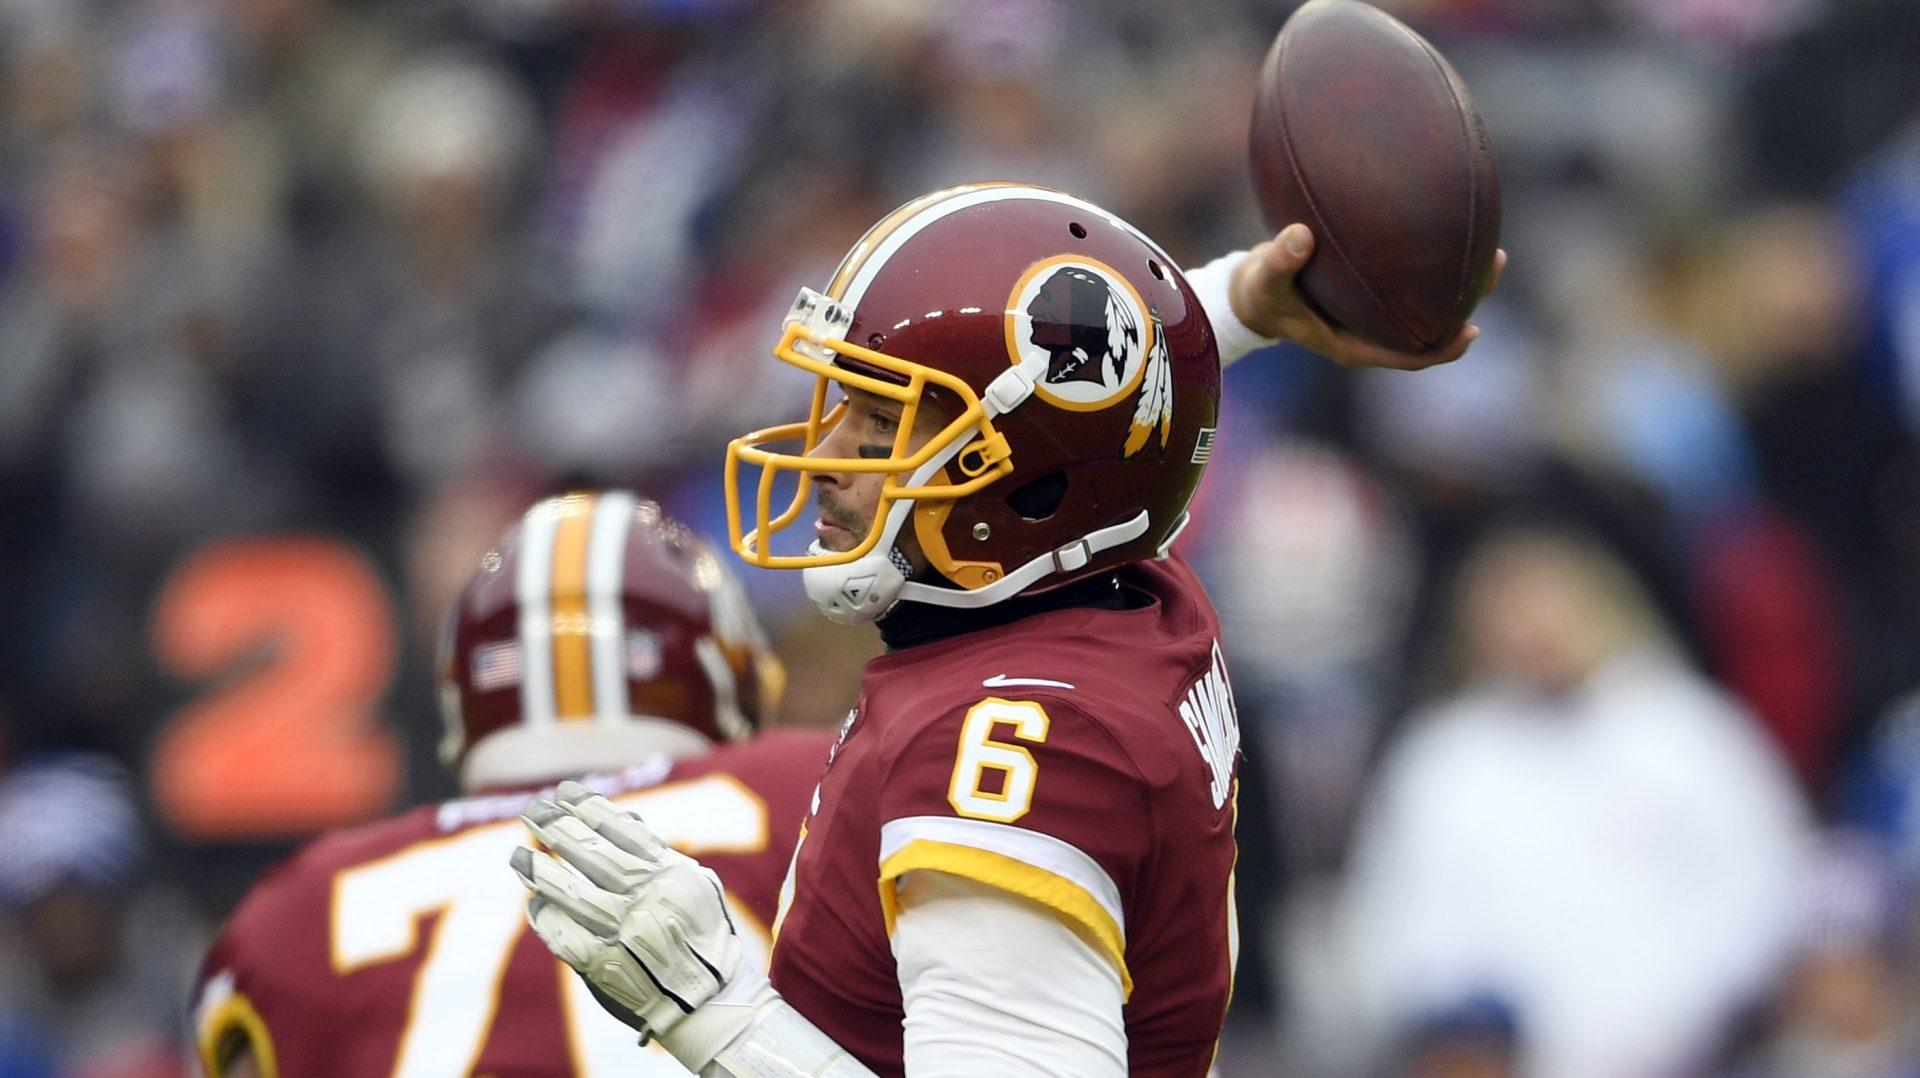 Washington's Mark Sanchez throws early pick-six, later benched